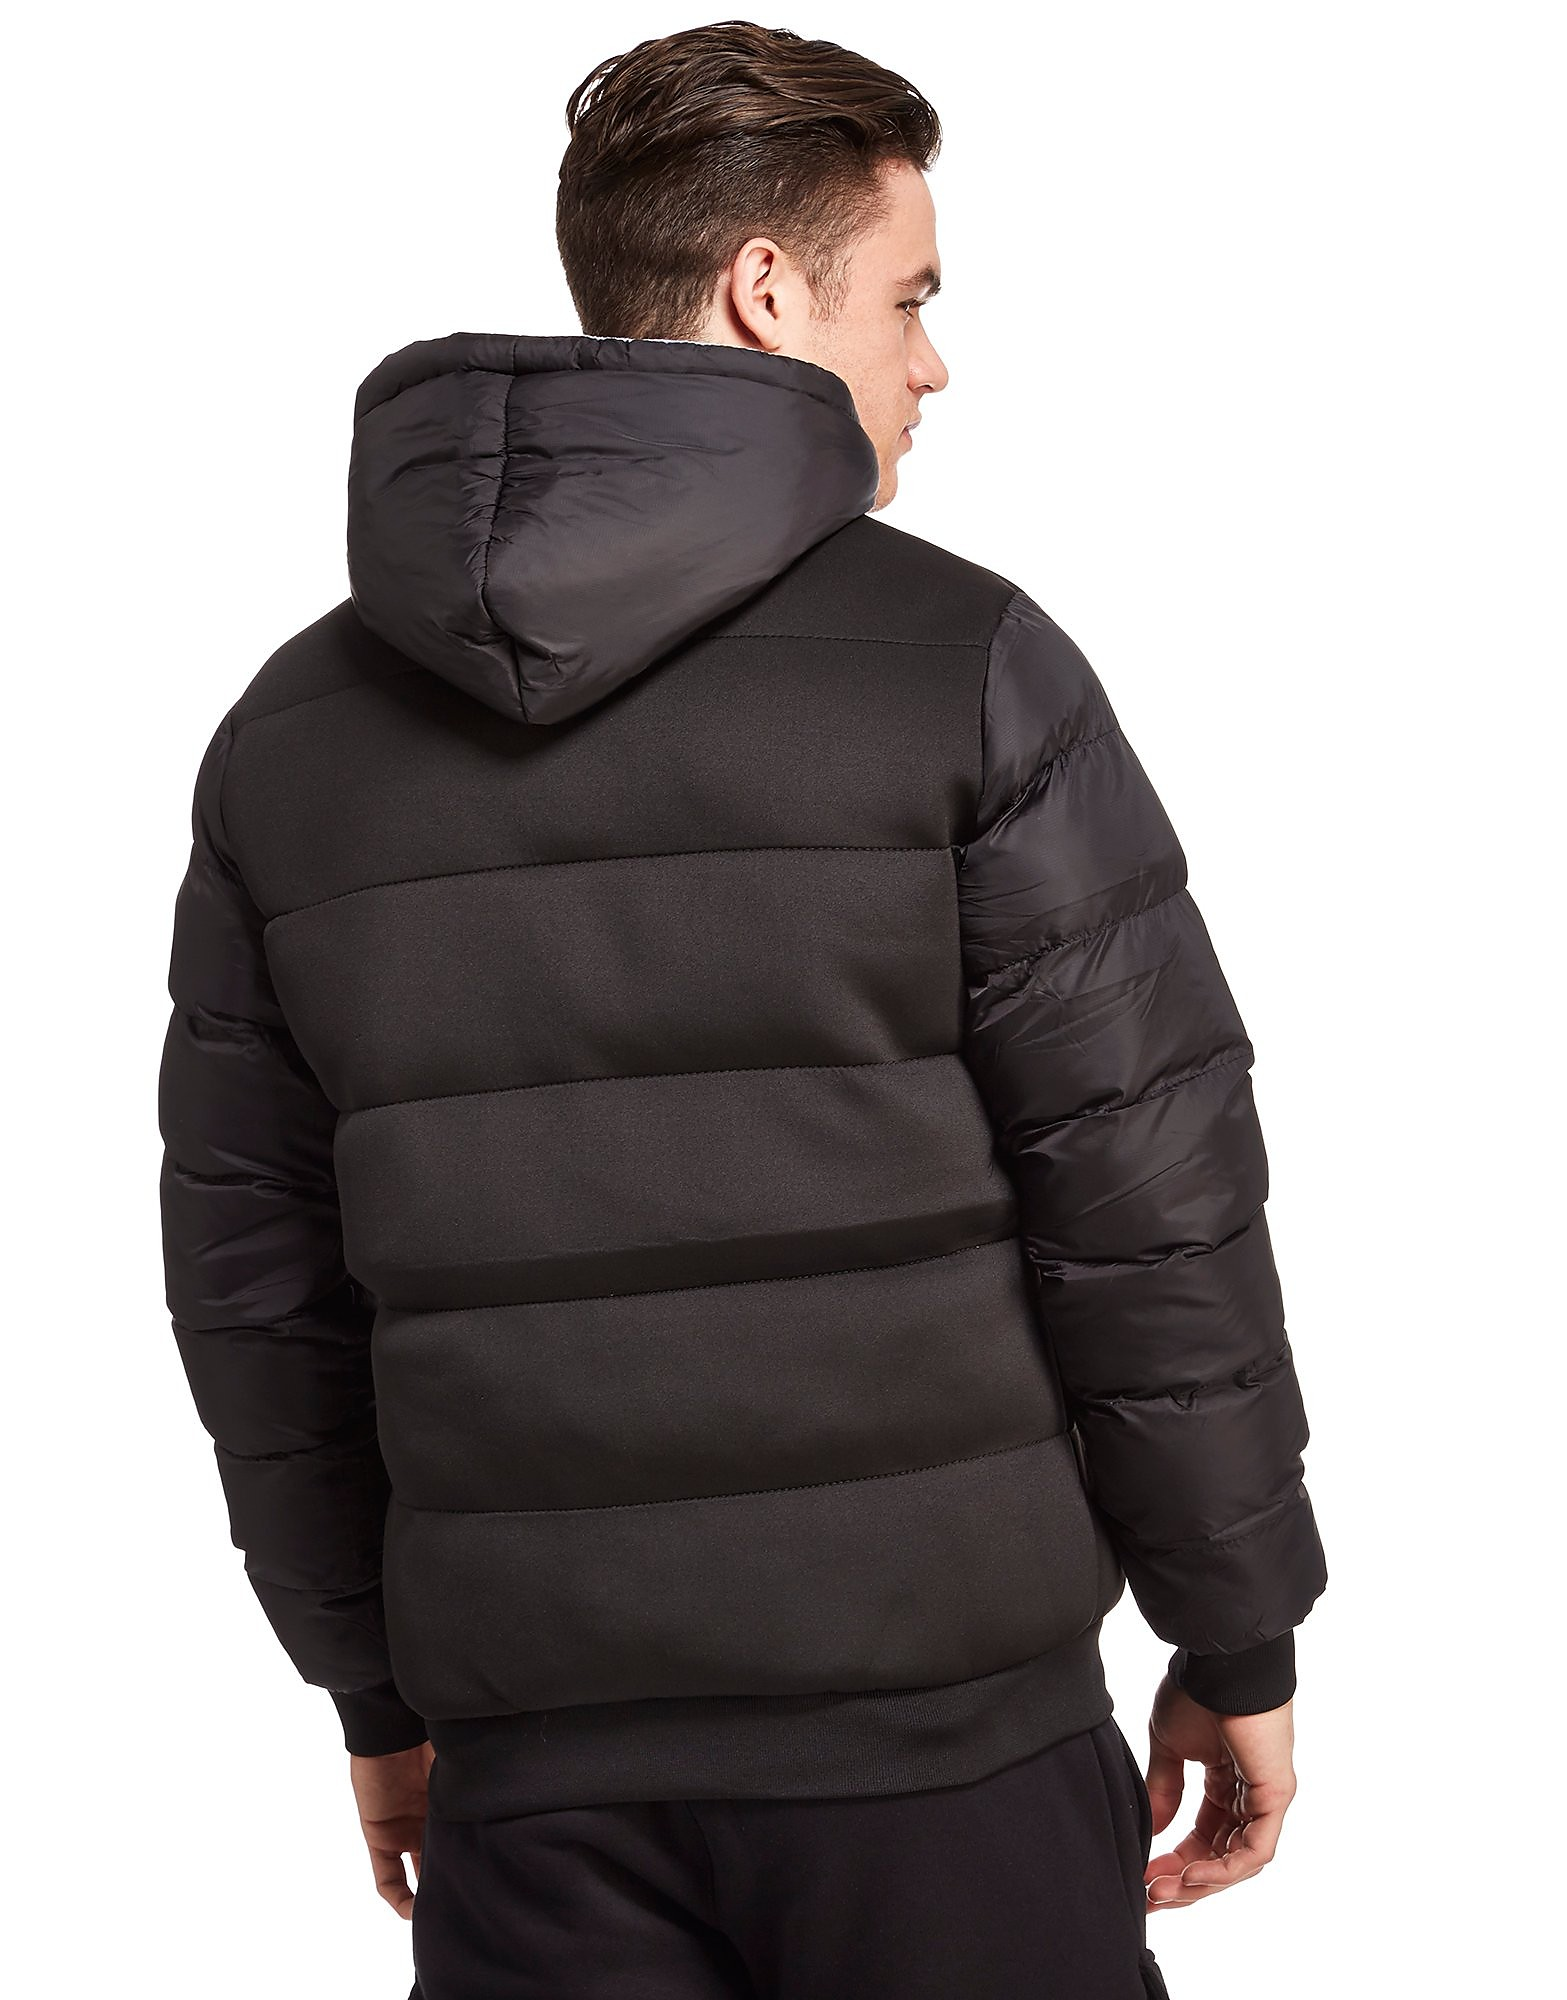 Supply & Demand Tear Jacket